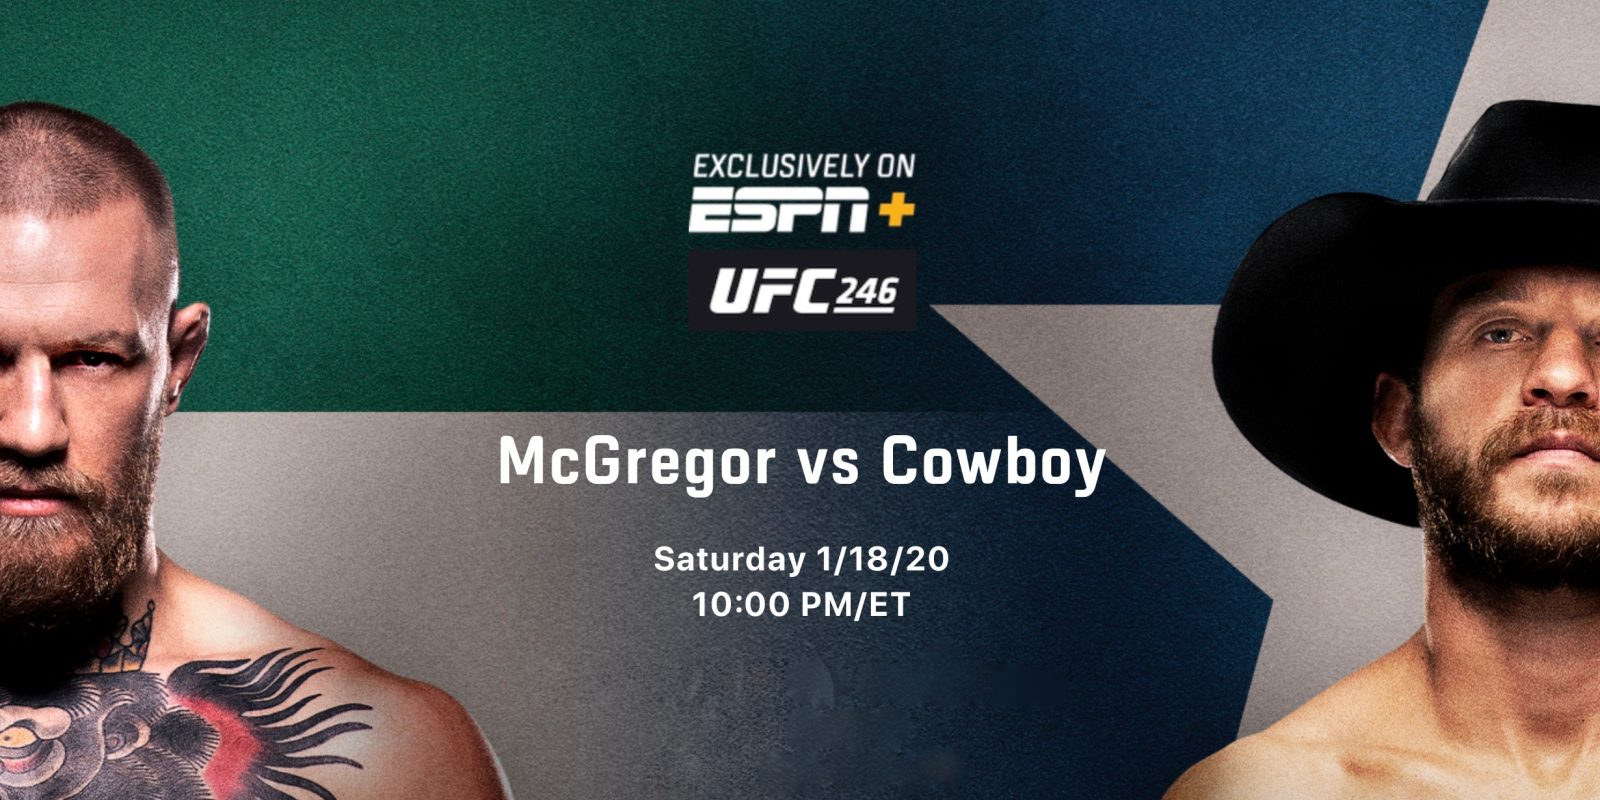 How to watch UFC 246 McGregor vs Cowboy on iPhone, iPad, Mac, and Apple TV